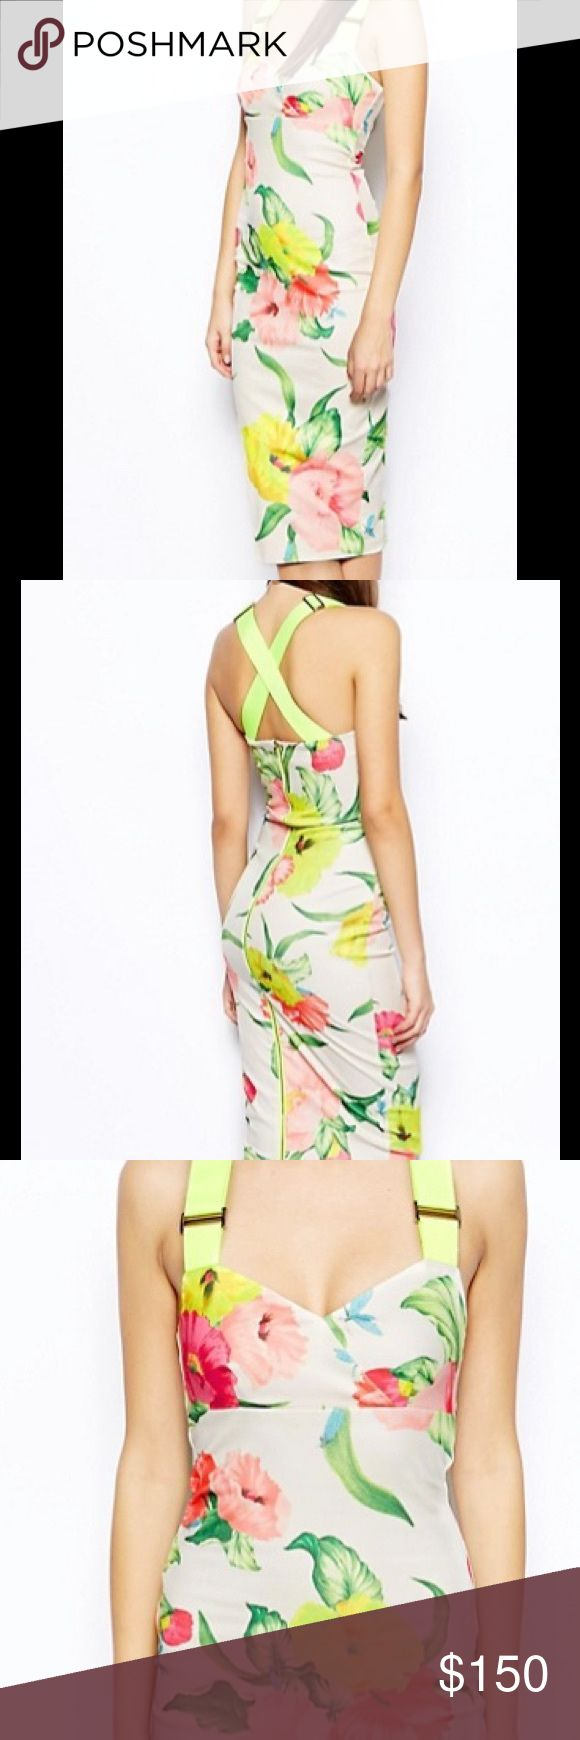 Ted Baker Taylar Midi Dress This fun floral print dress has adjustable crossover neon shower straps zipper along back. Great for any spring event ! Ted Baker London Dresses Midi